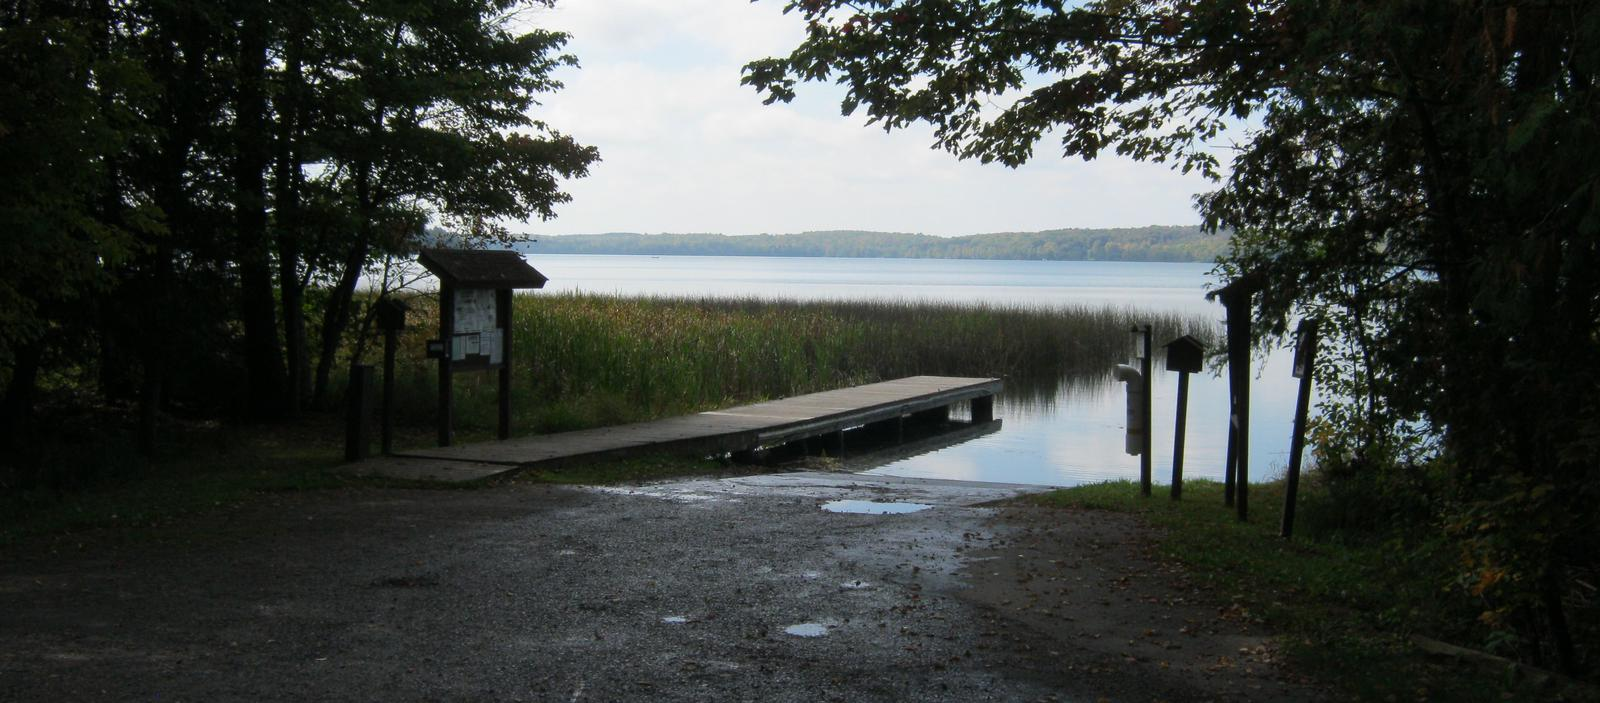 Preview photo of Kentuck Lake Campground